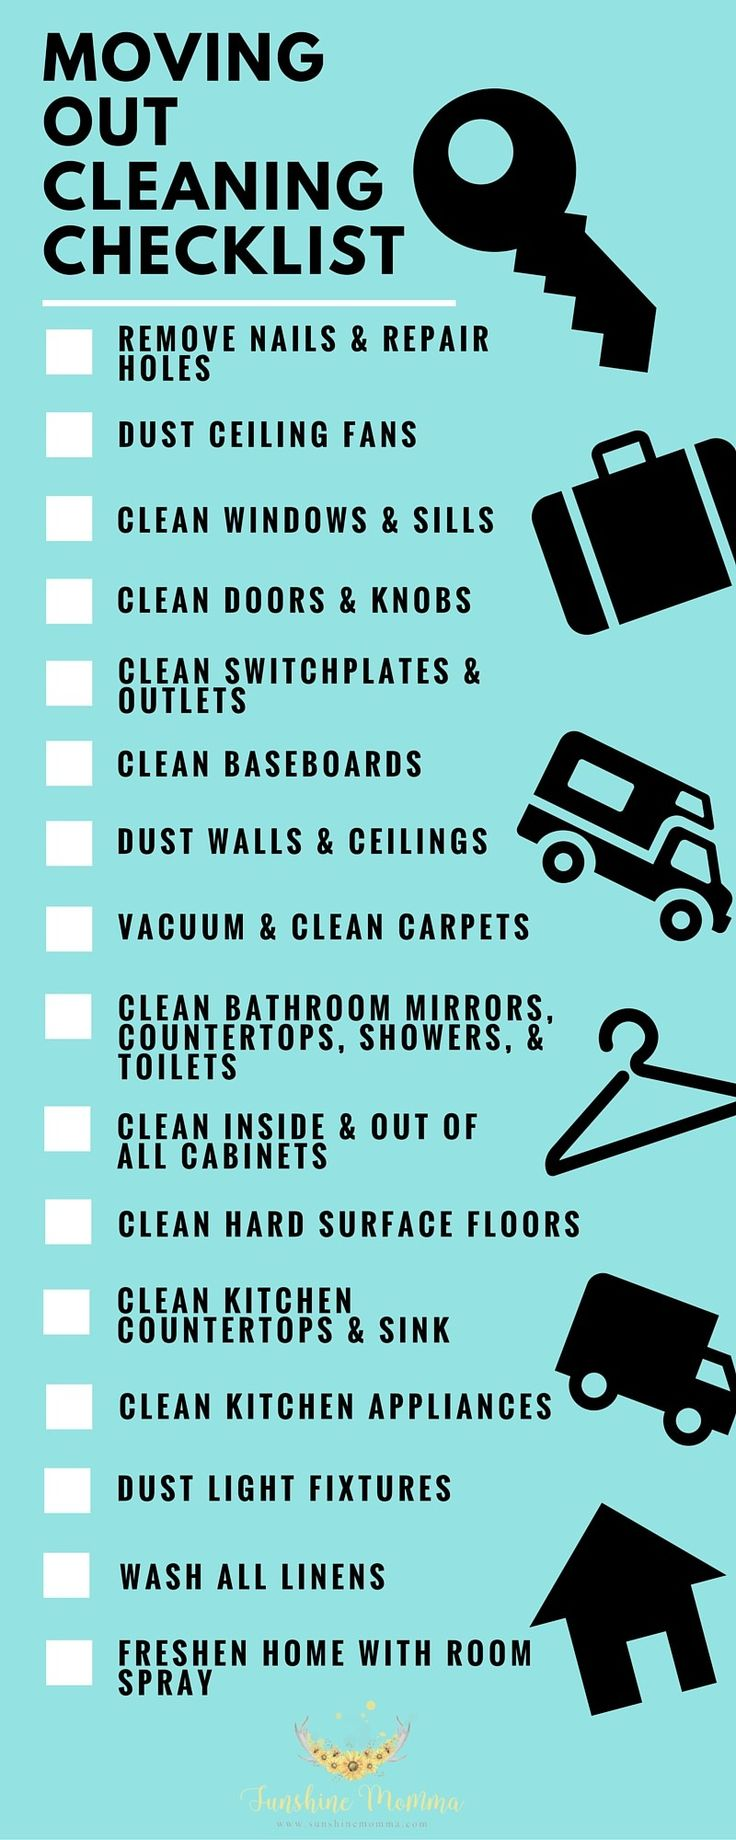 about moving cleaning checklist on pinterest moving out checklist